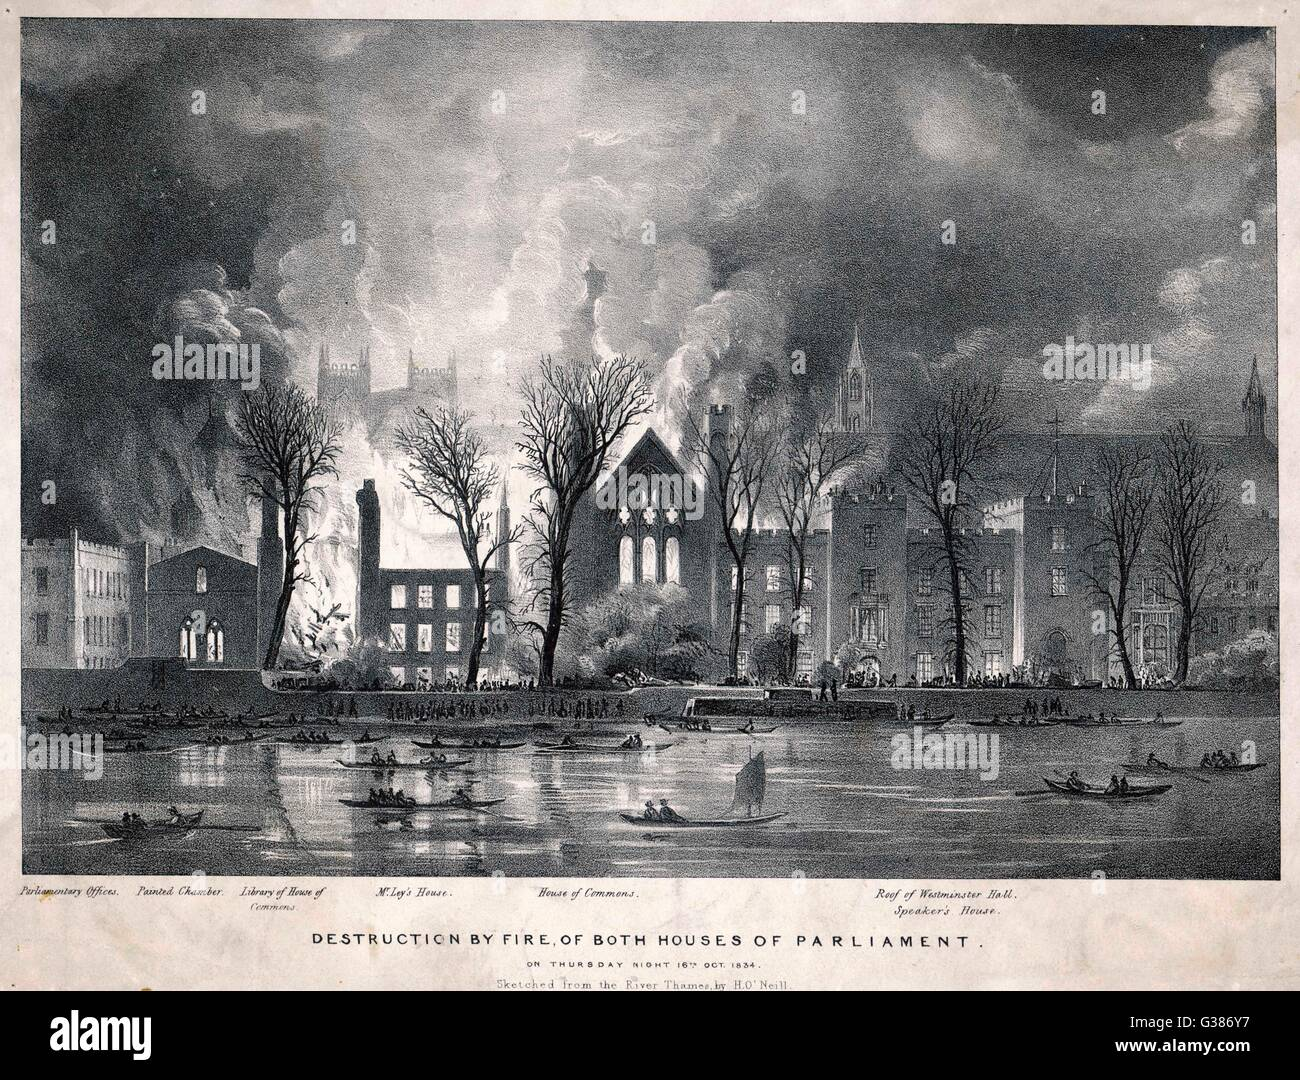 Burning of the Houses of  Parliament.        Date: 1834 - Stock Image